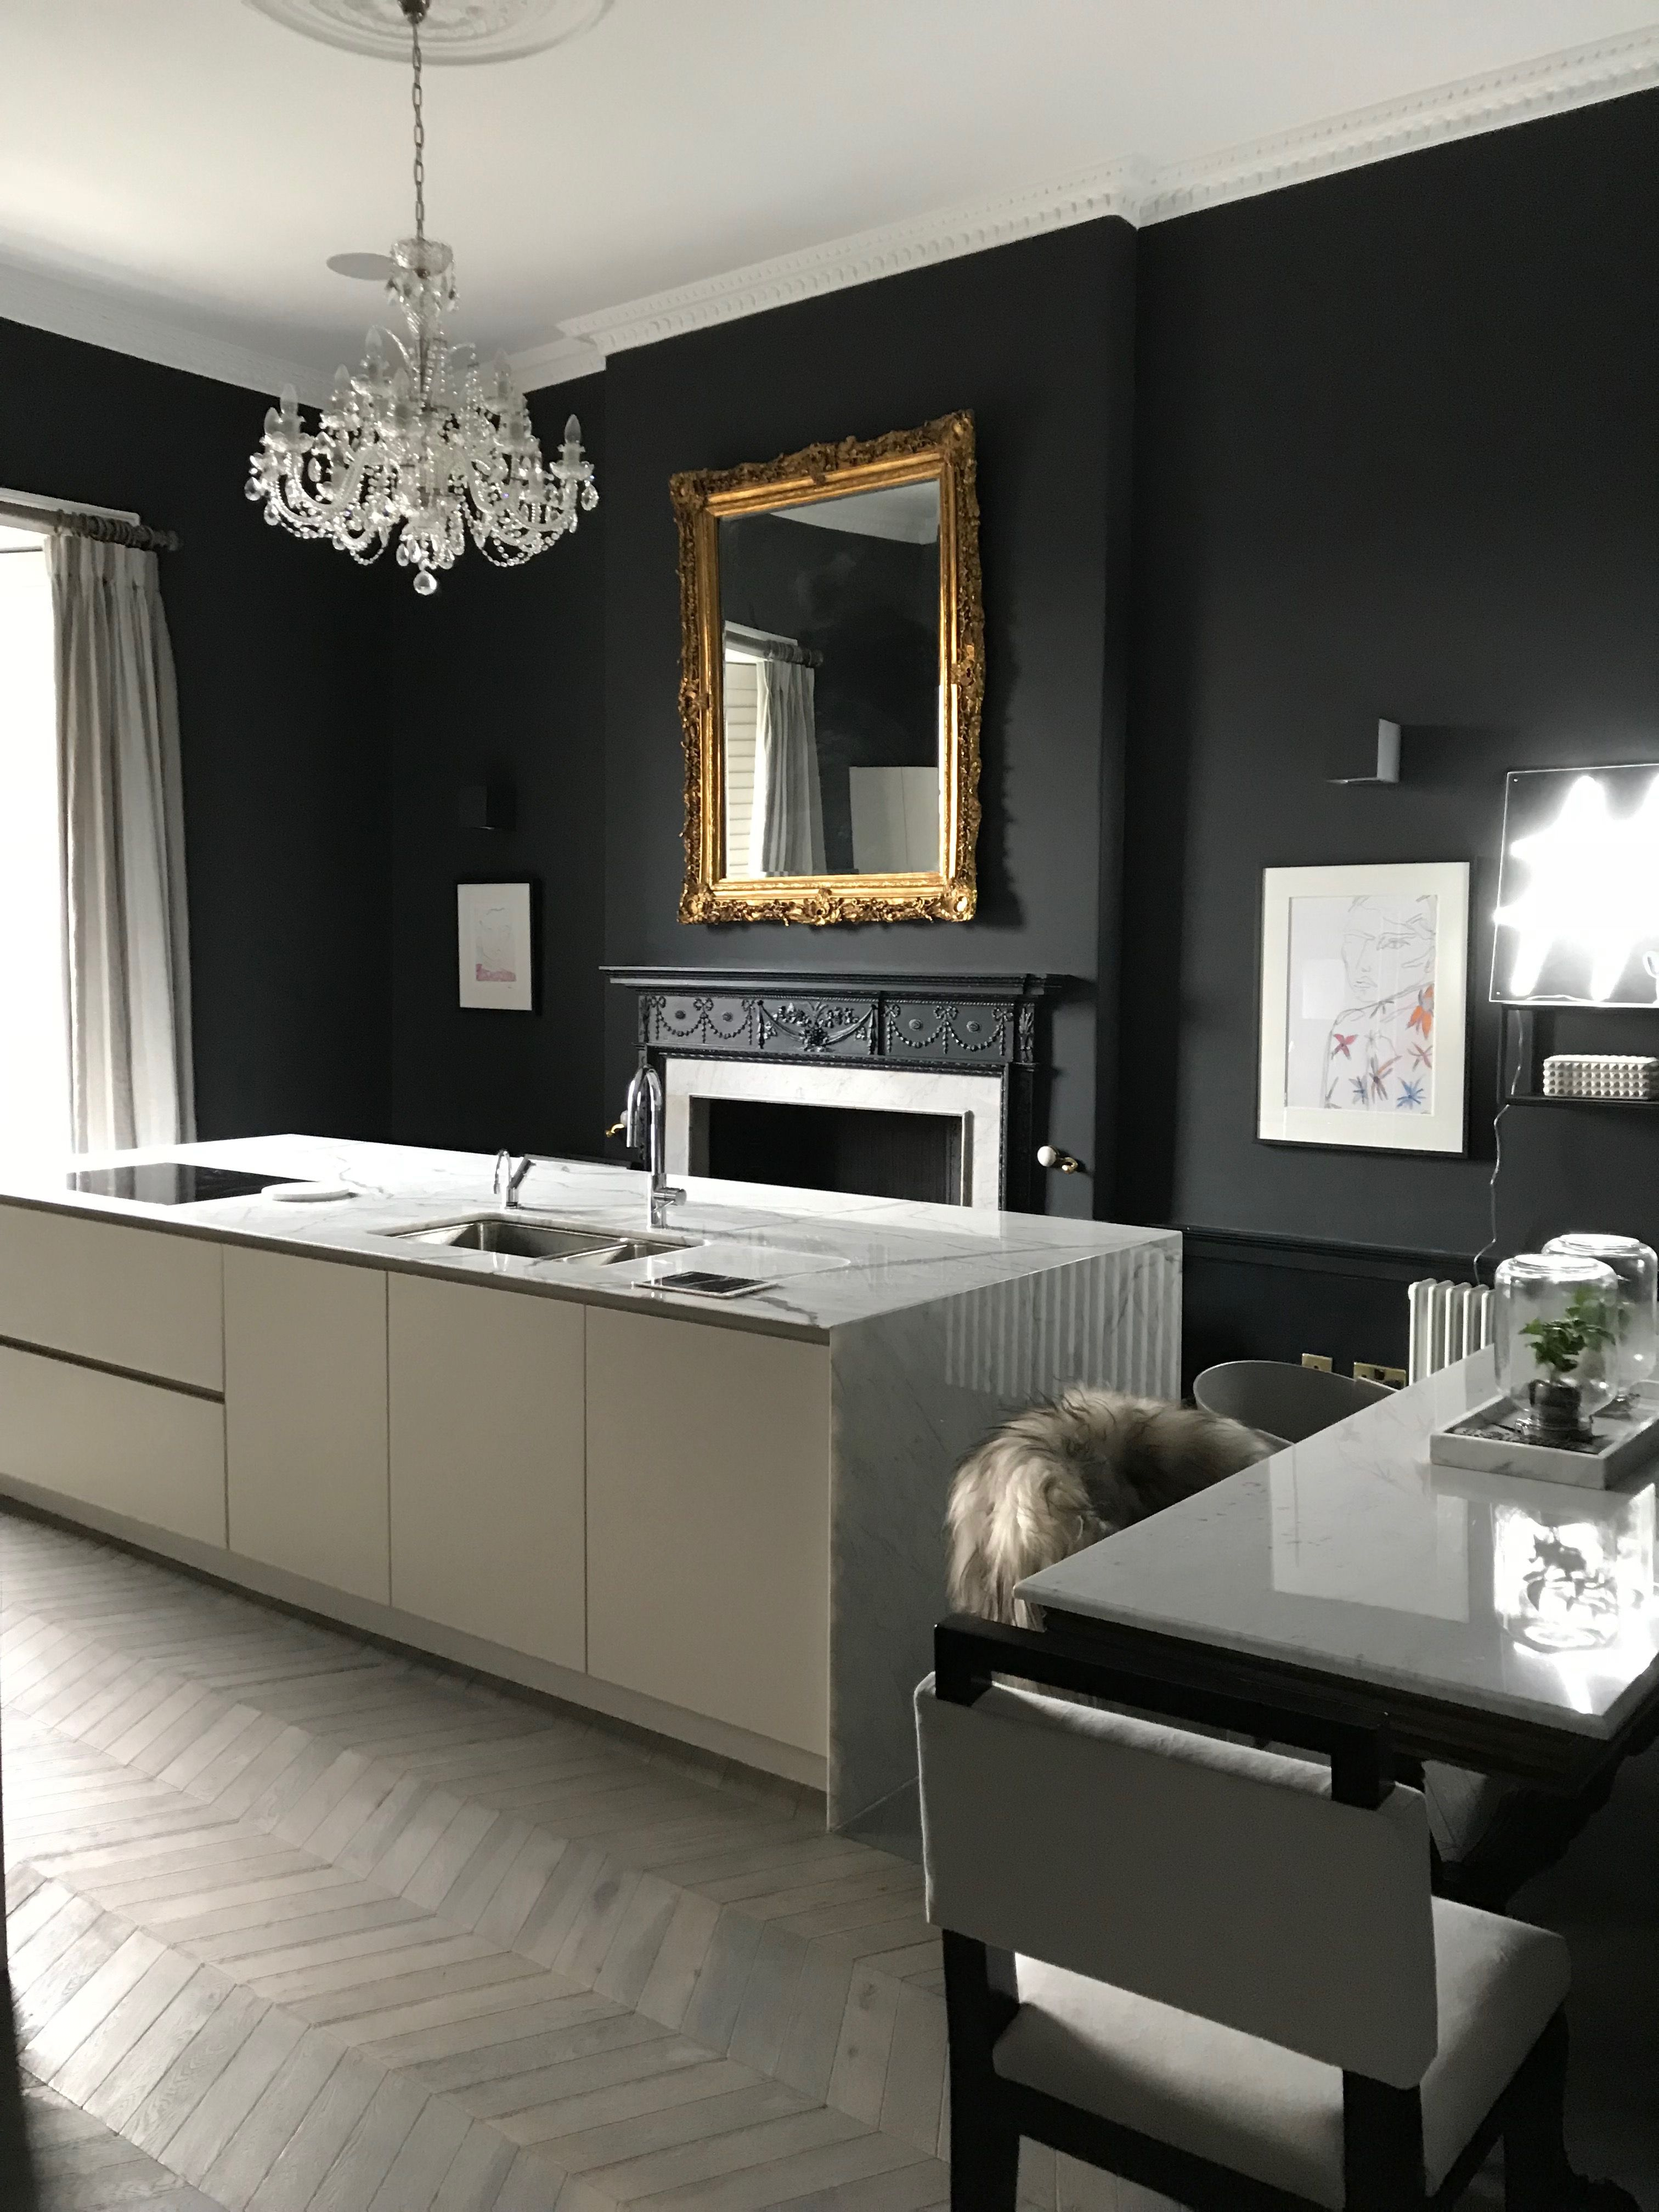 Best Off Black Farrow Ball Kitchen Makes The Marble Pop 400 x 300